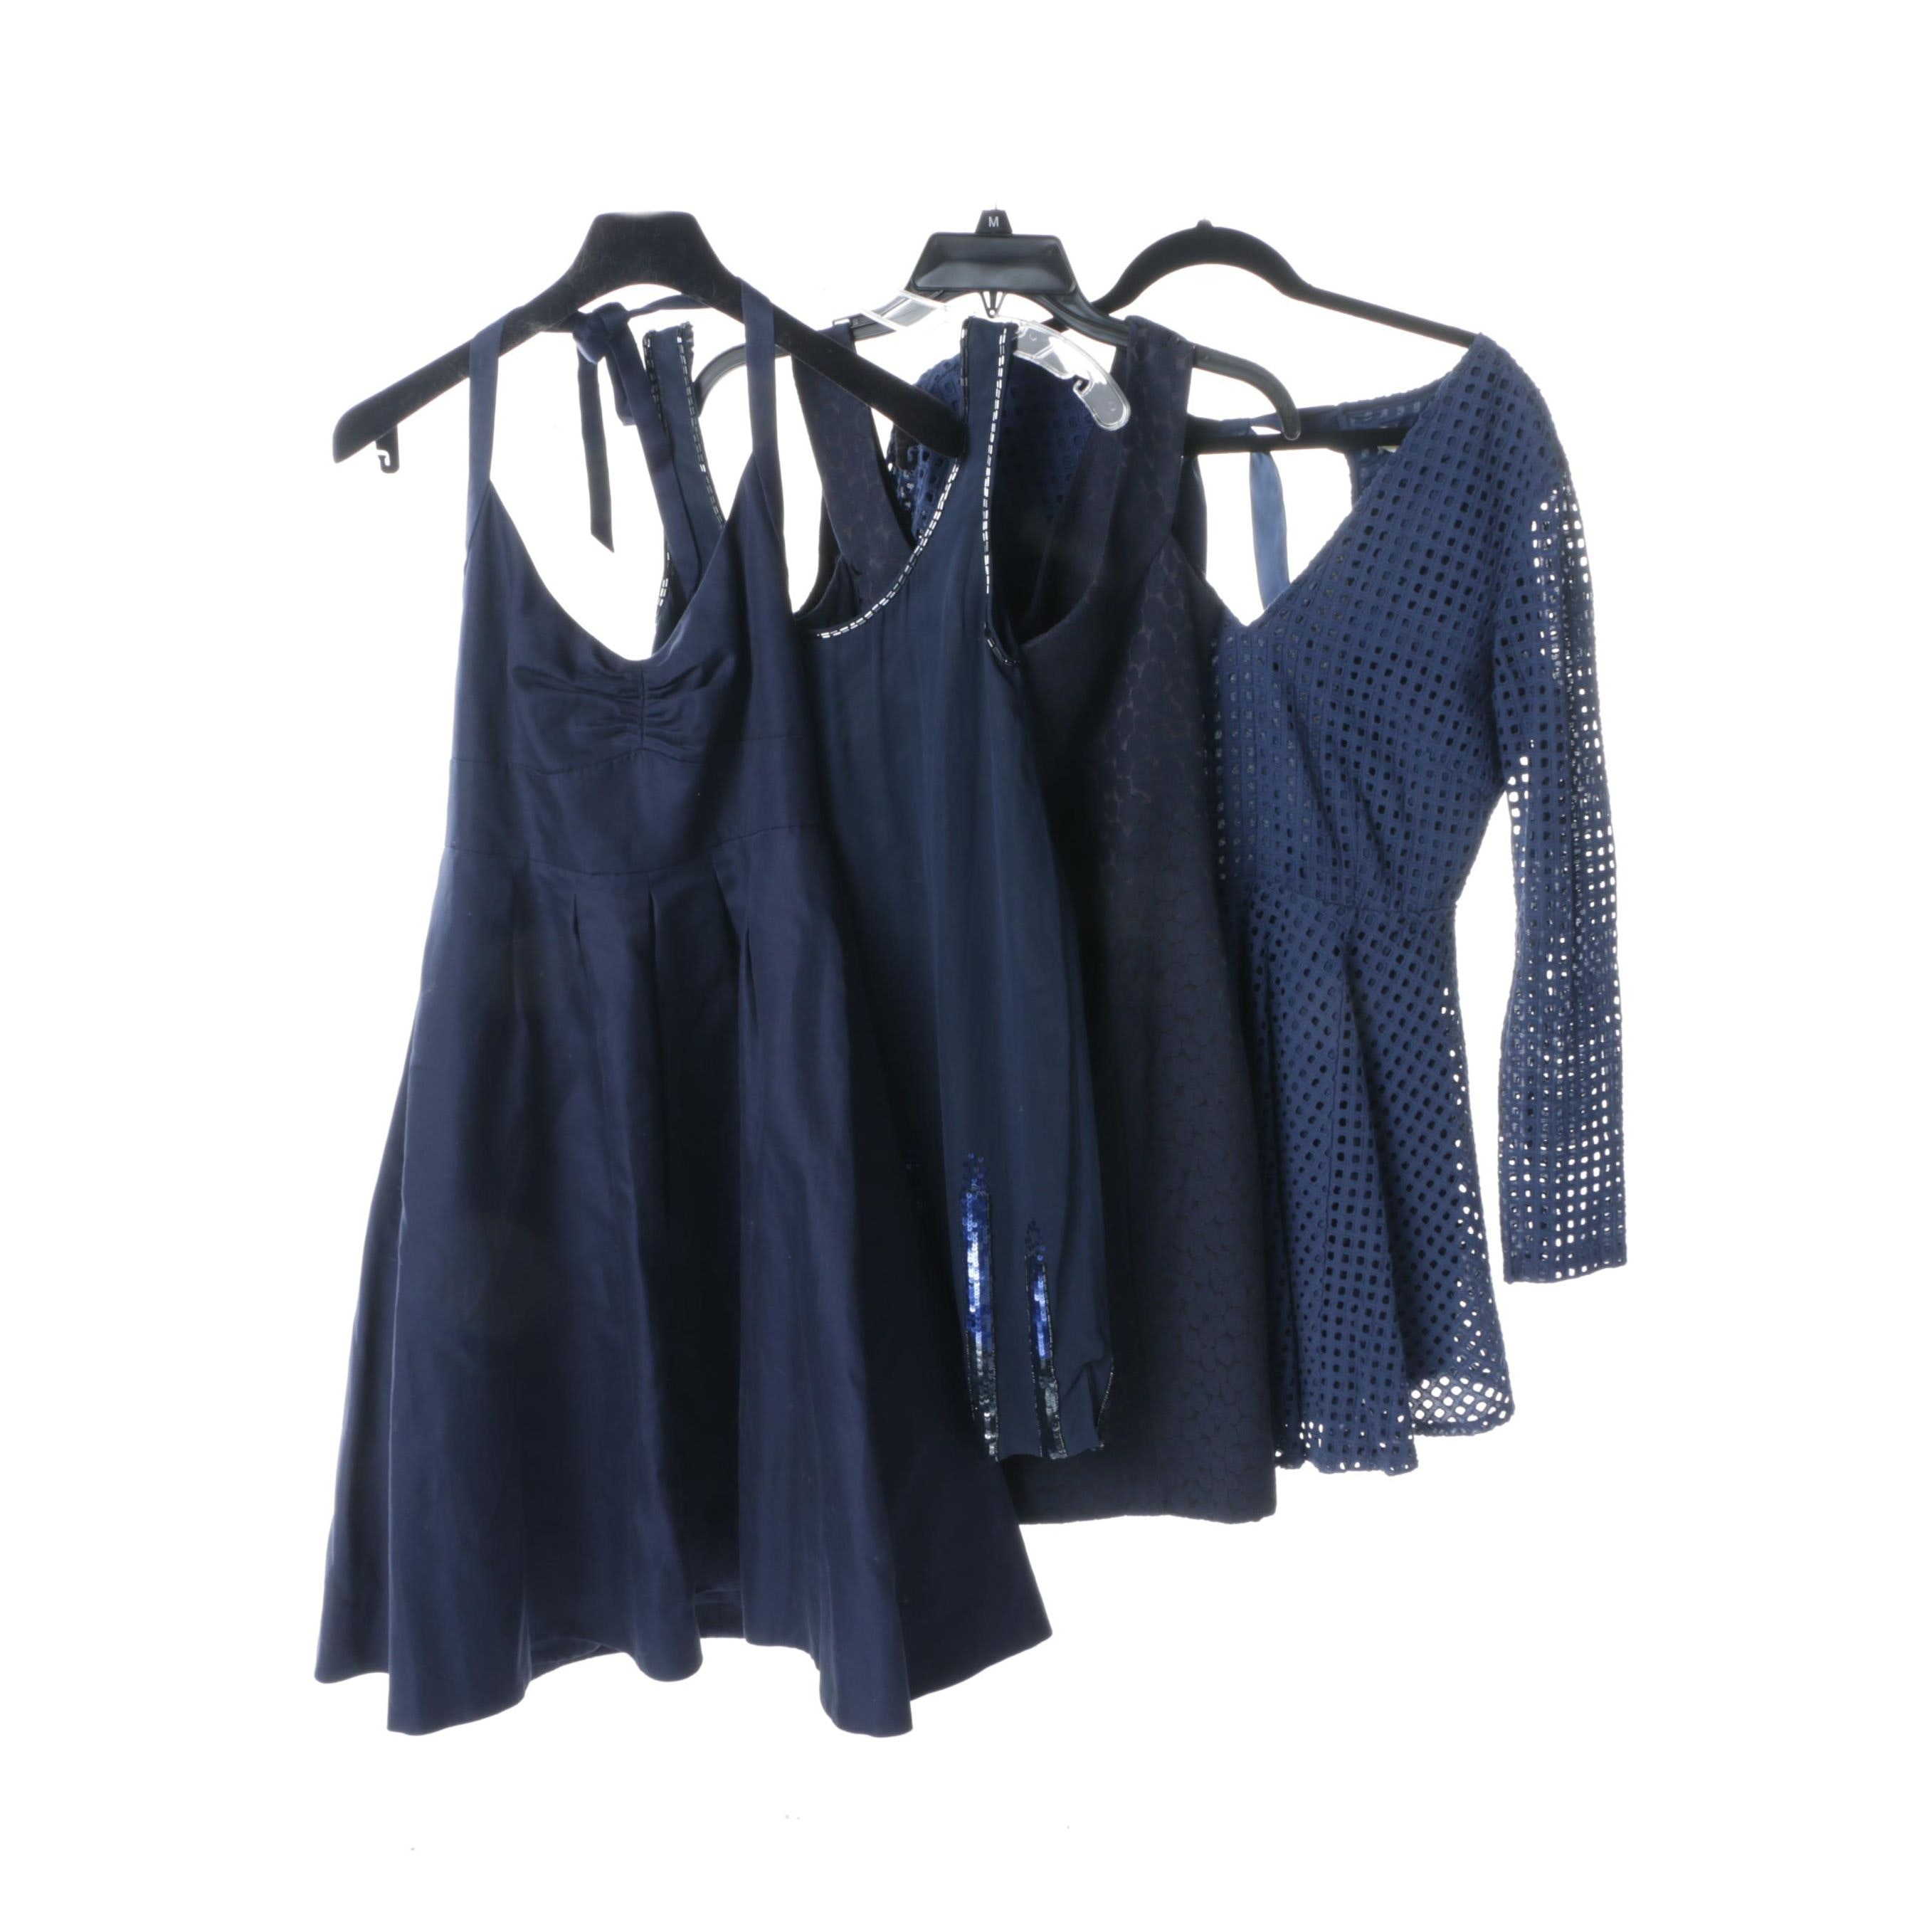 Navy Blue Cocktail Dresses Including Silk Charlotte Ronson